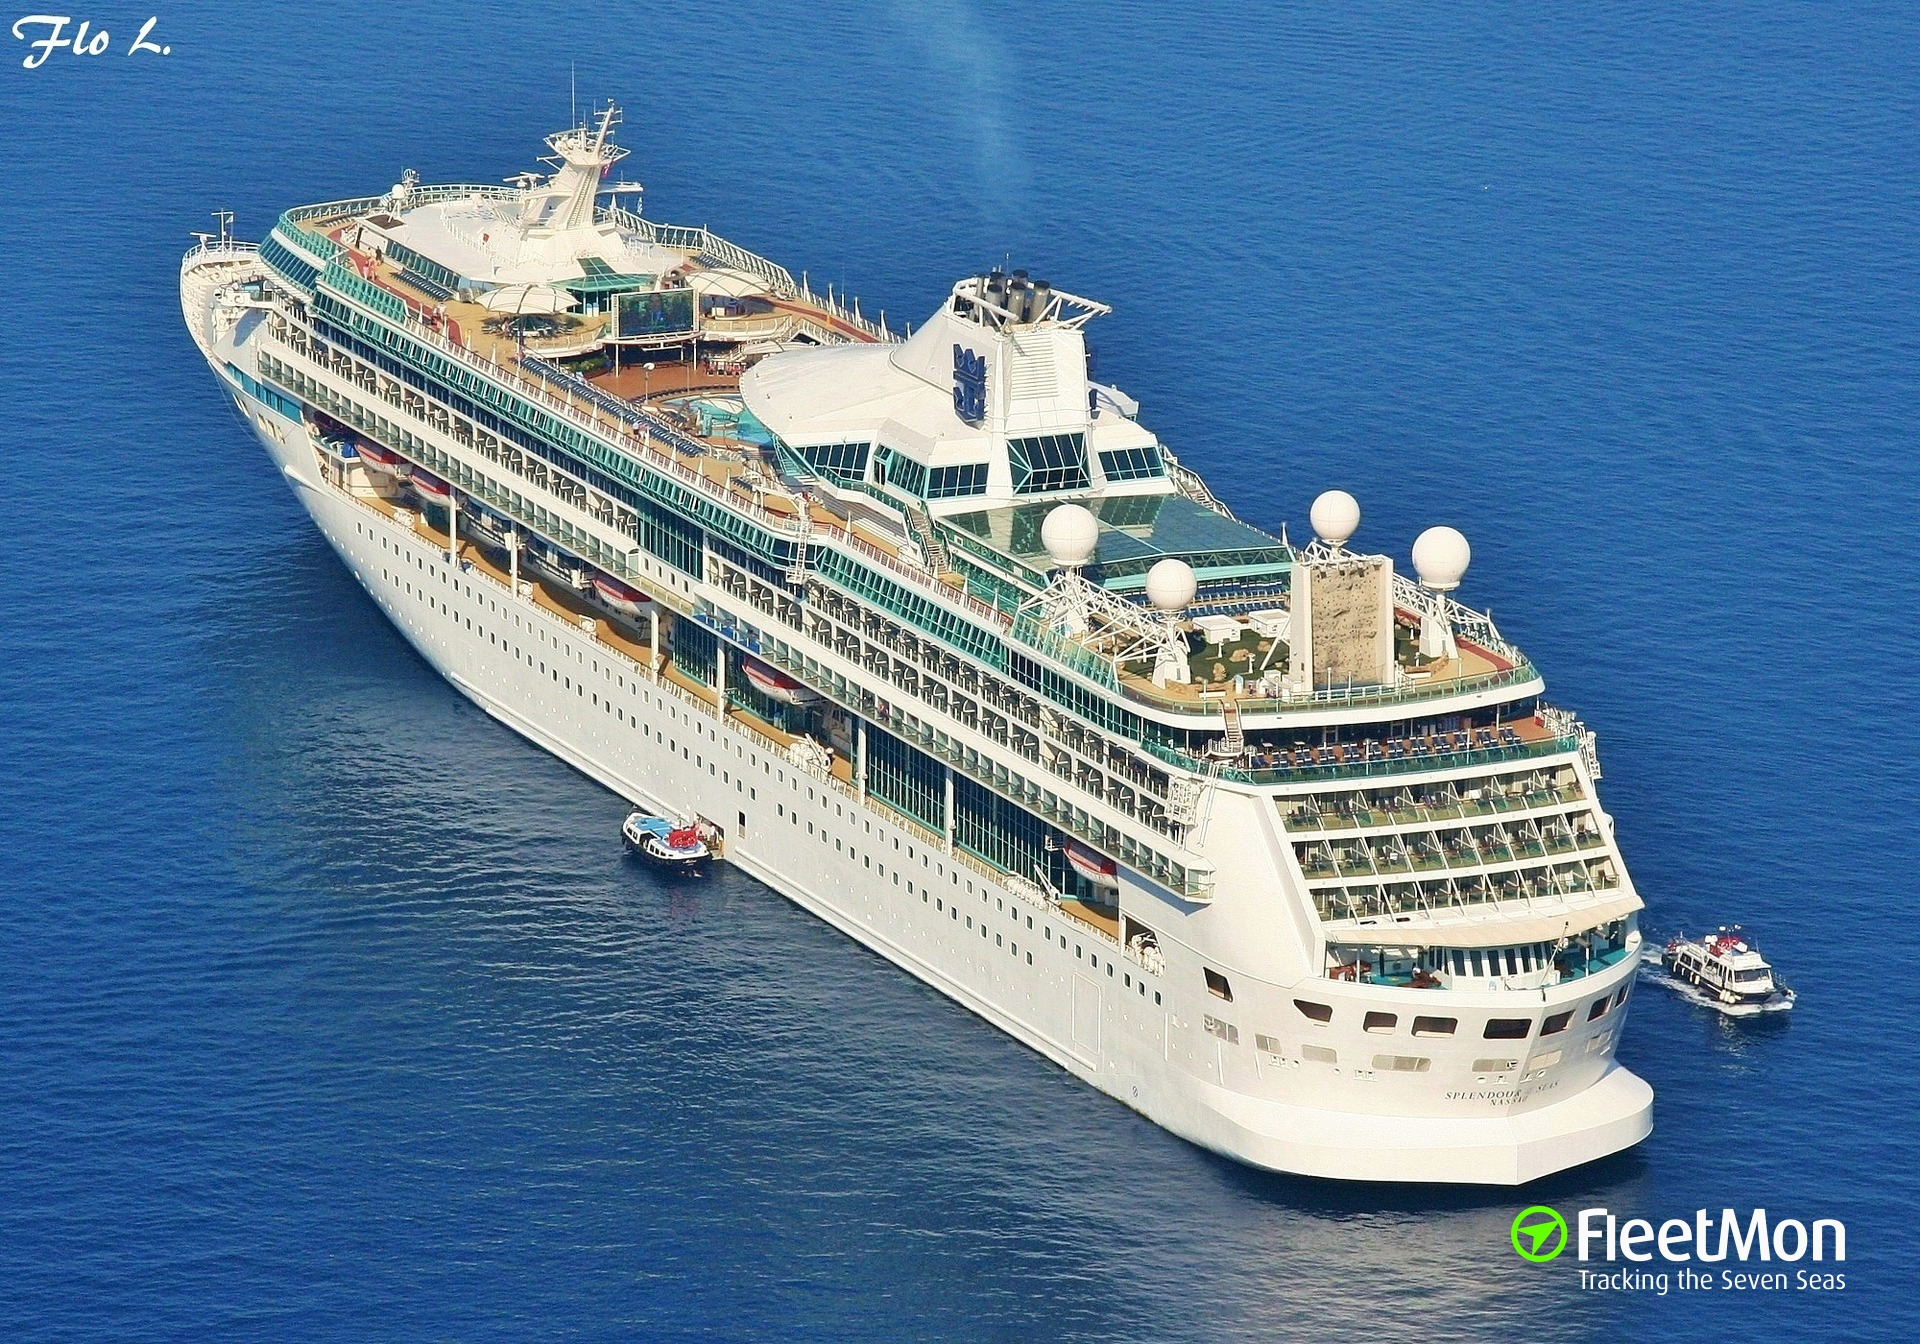 Fire in engine room of cruise liner Splendour of the Seas, Ionian sea